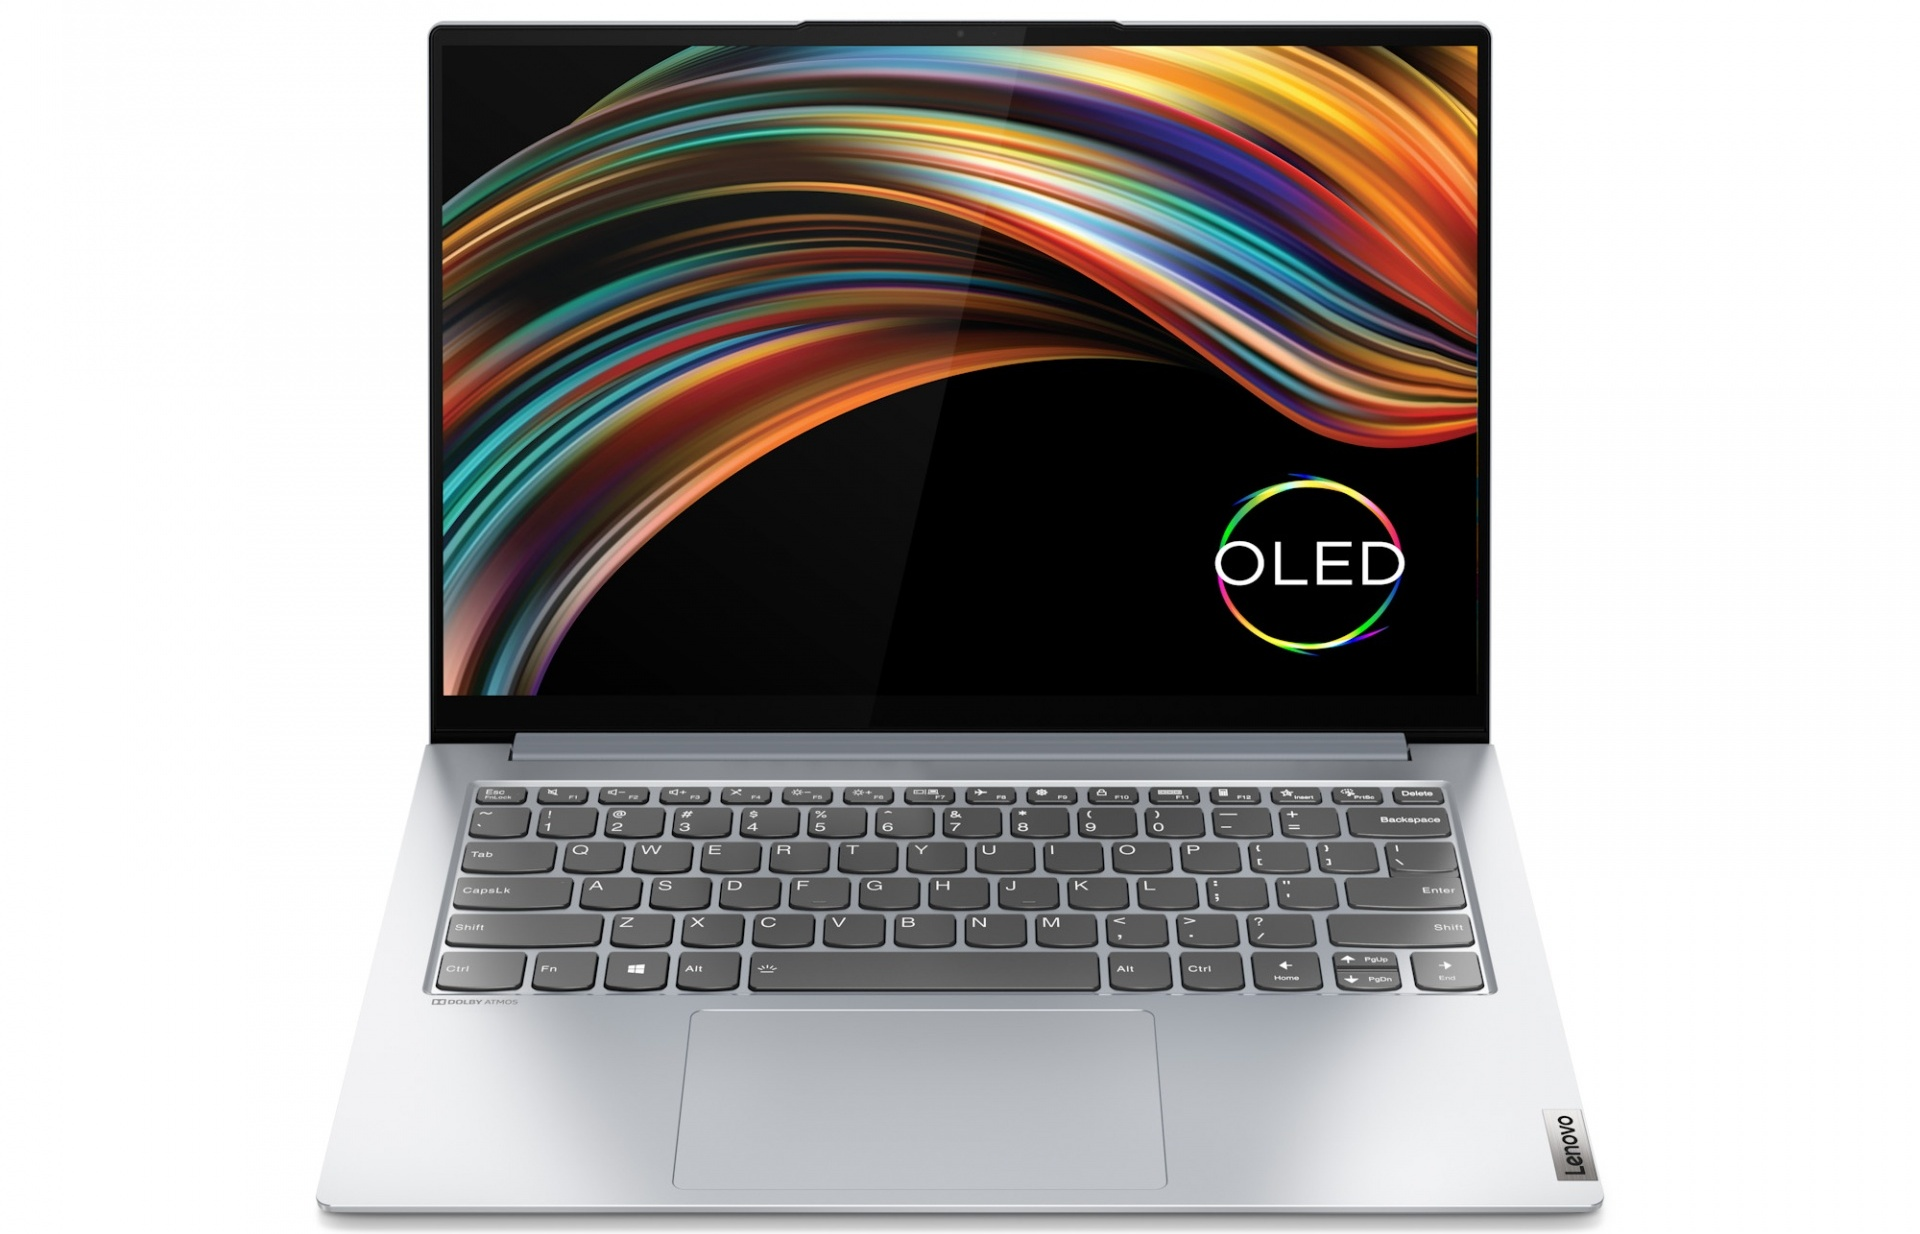 Lenovo launches new high-end Yoga Slim 7 Pro OLED laptop to strengthen market presence